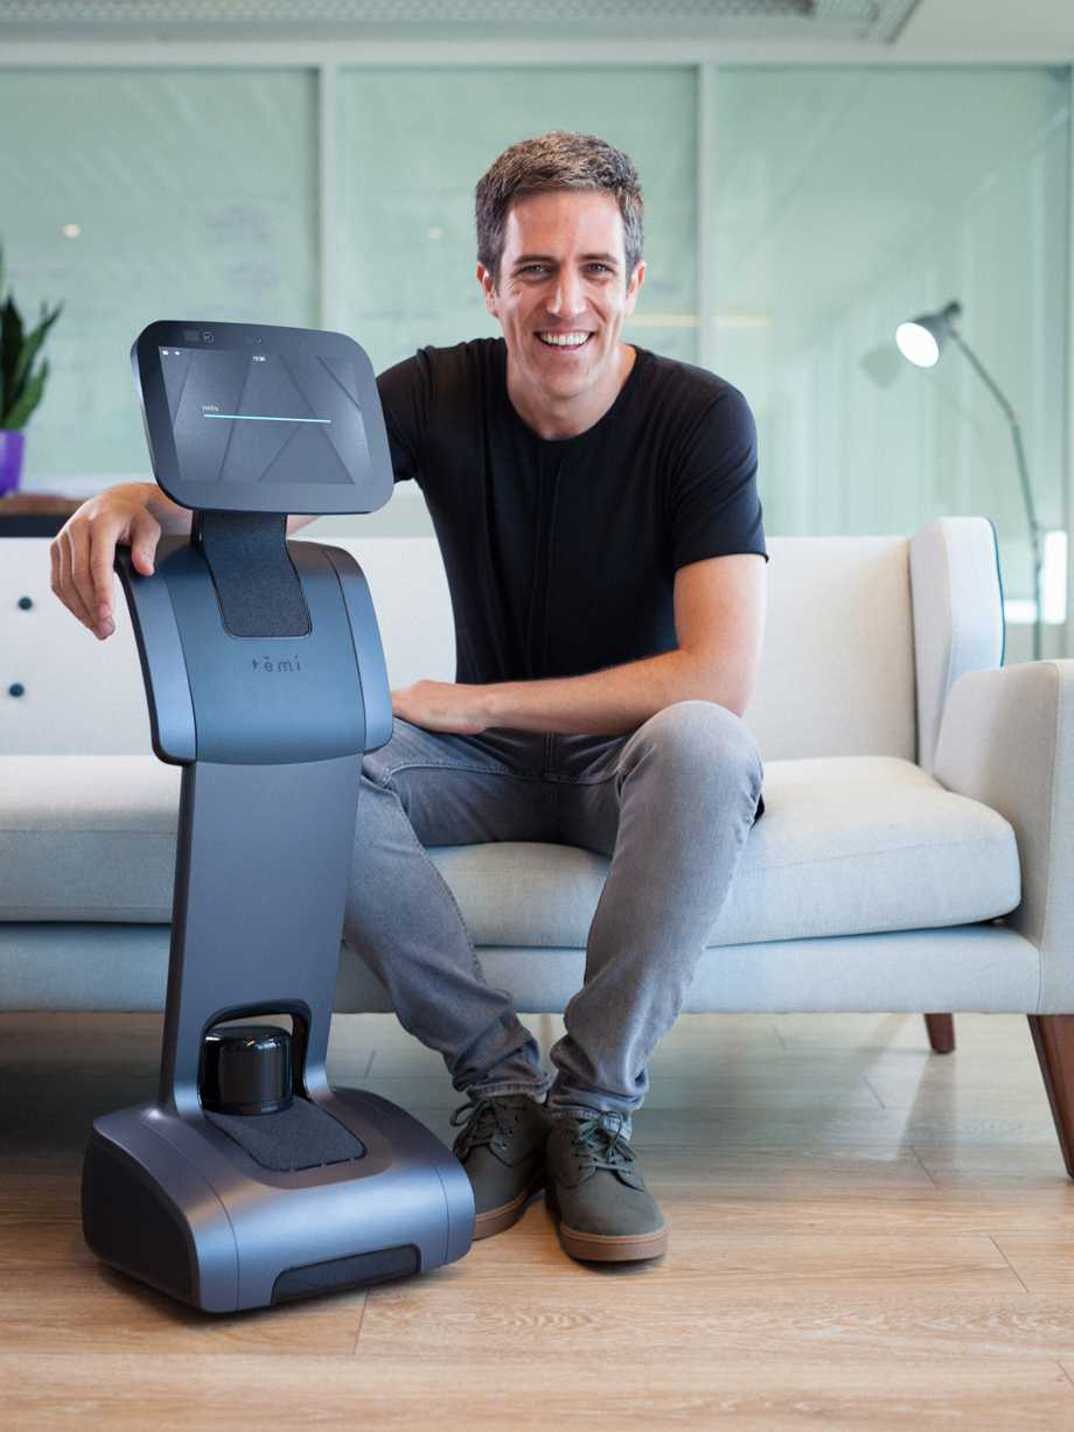 Yossi Wolf with his amazing creation Temi, the worlds first truly intelligent, mobile and affordable, personal robot ... that actually works!